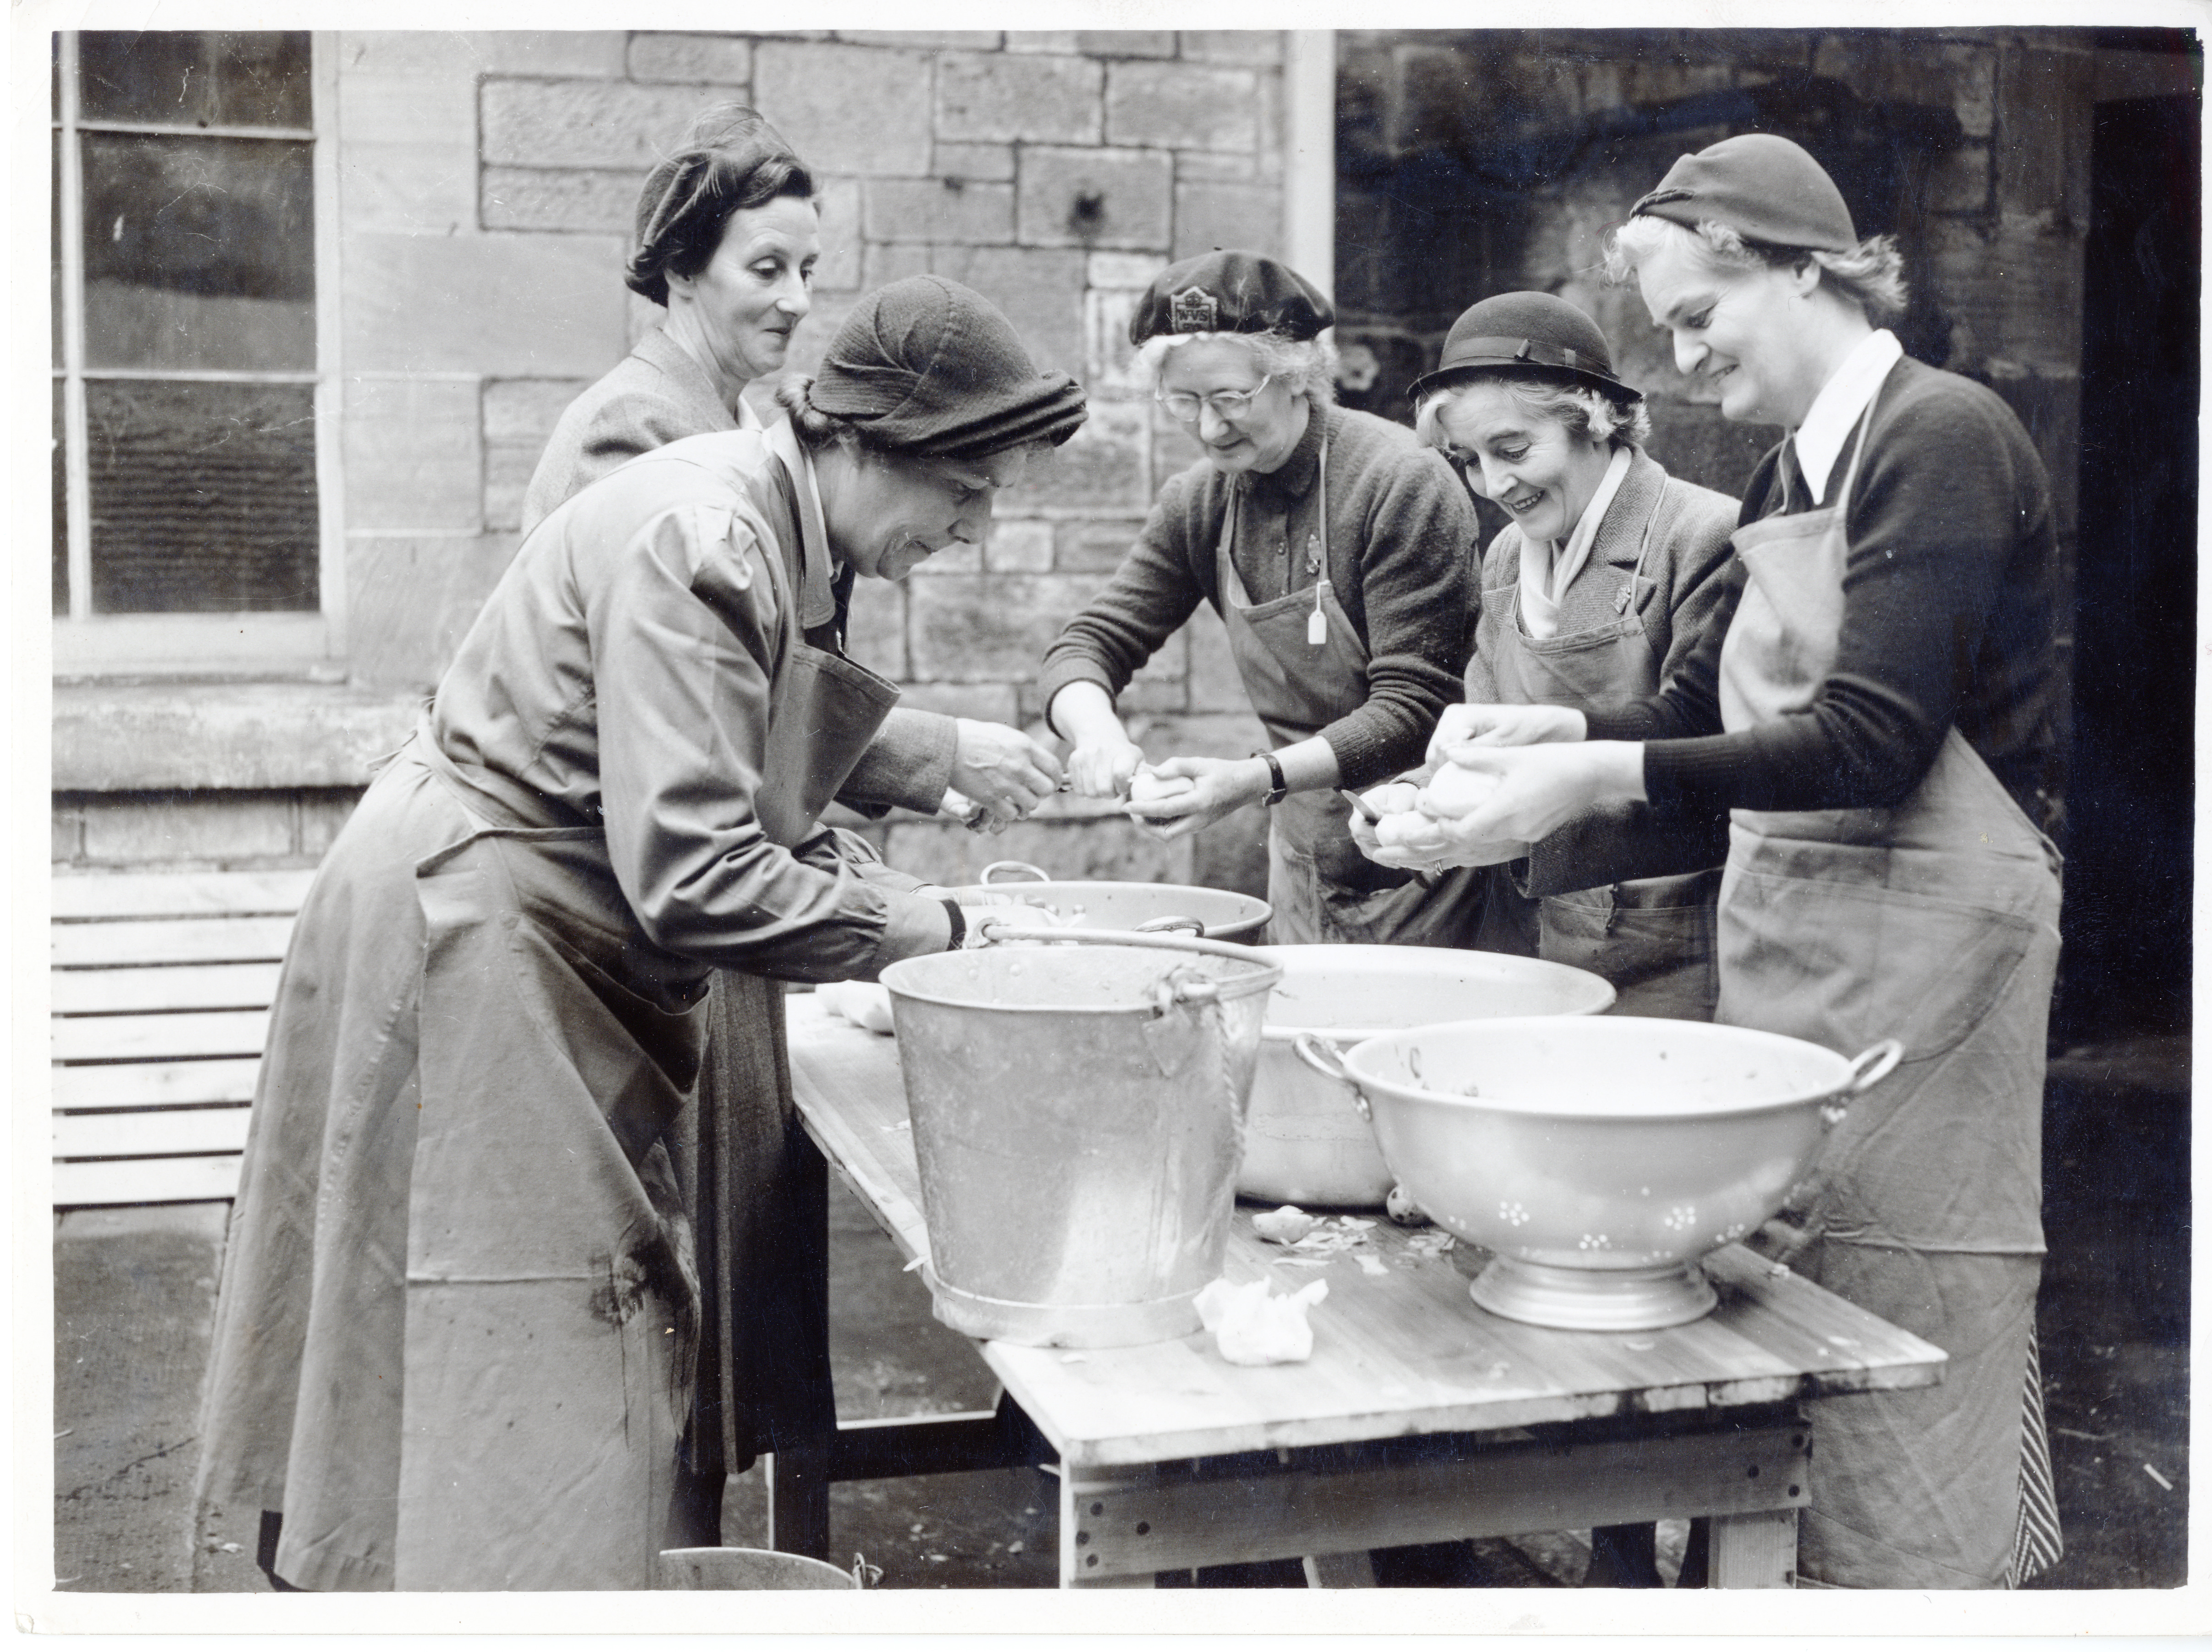 Emergency feeding exercise for 70 people, led by Mrs. J.G. Ritchie, Dumbarton, October 22, 1953.